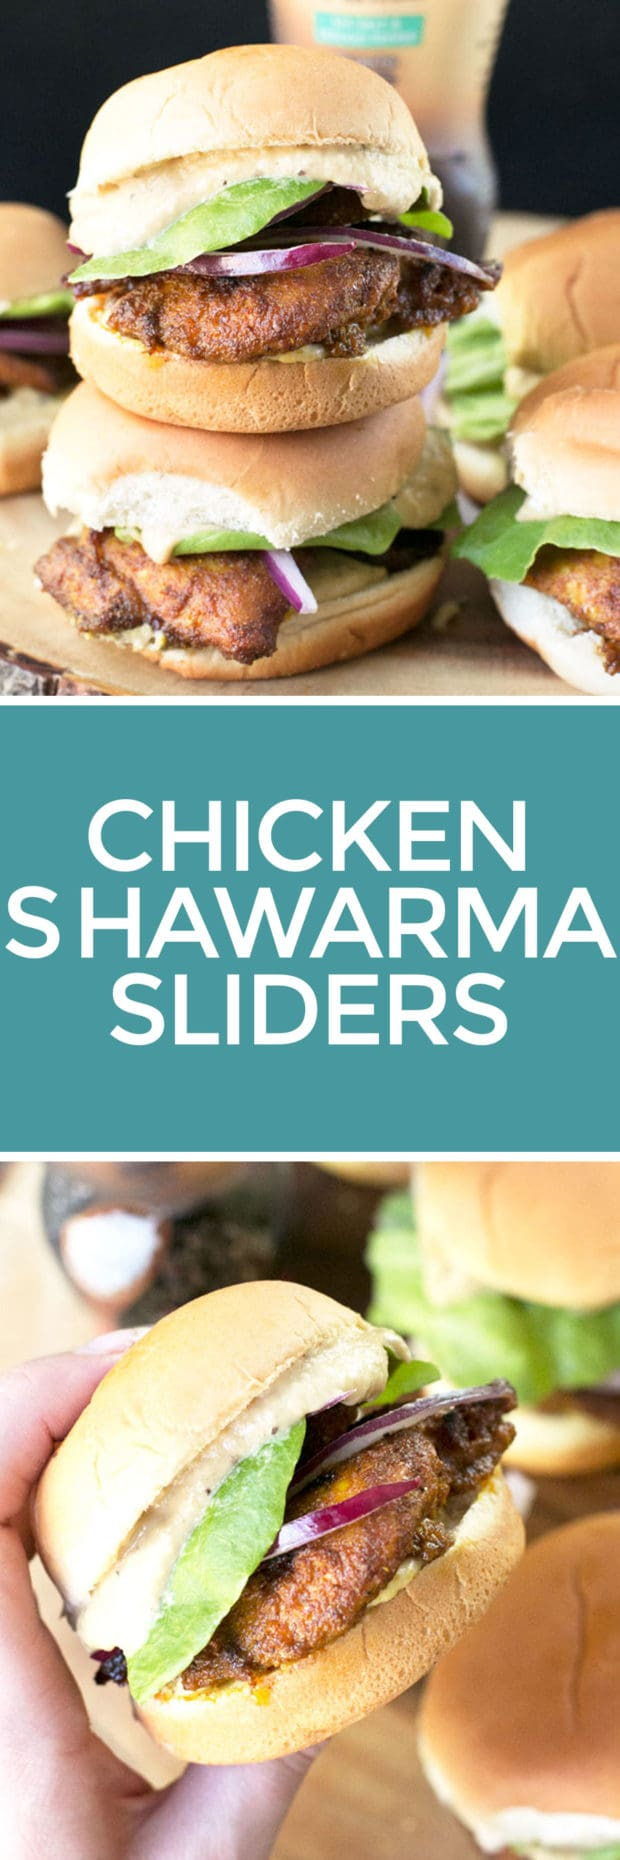 Chicken Shawarma Sliders with Sabra Spreads! | cakenknife.com